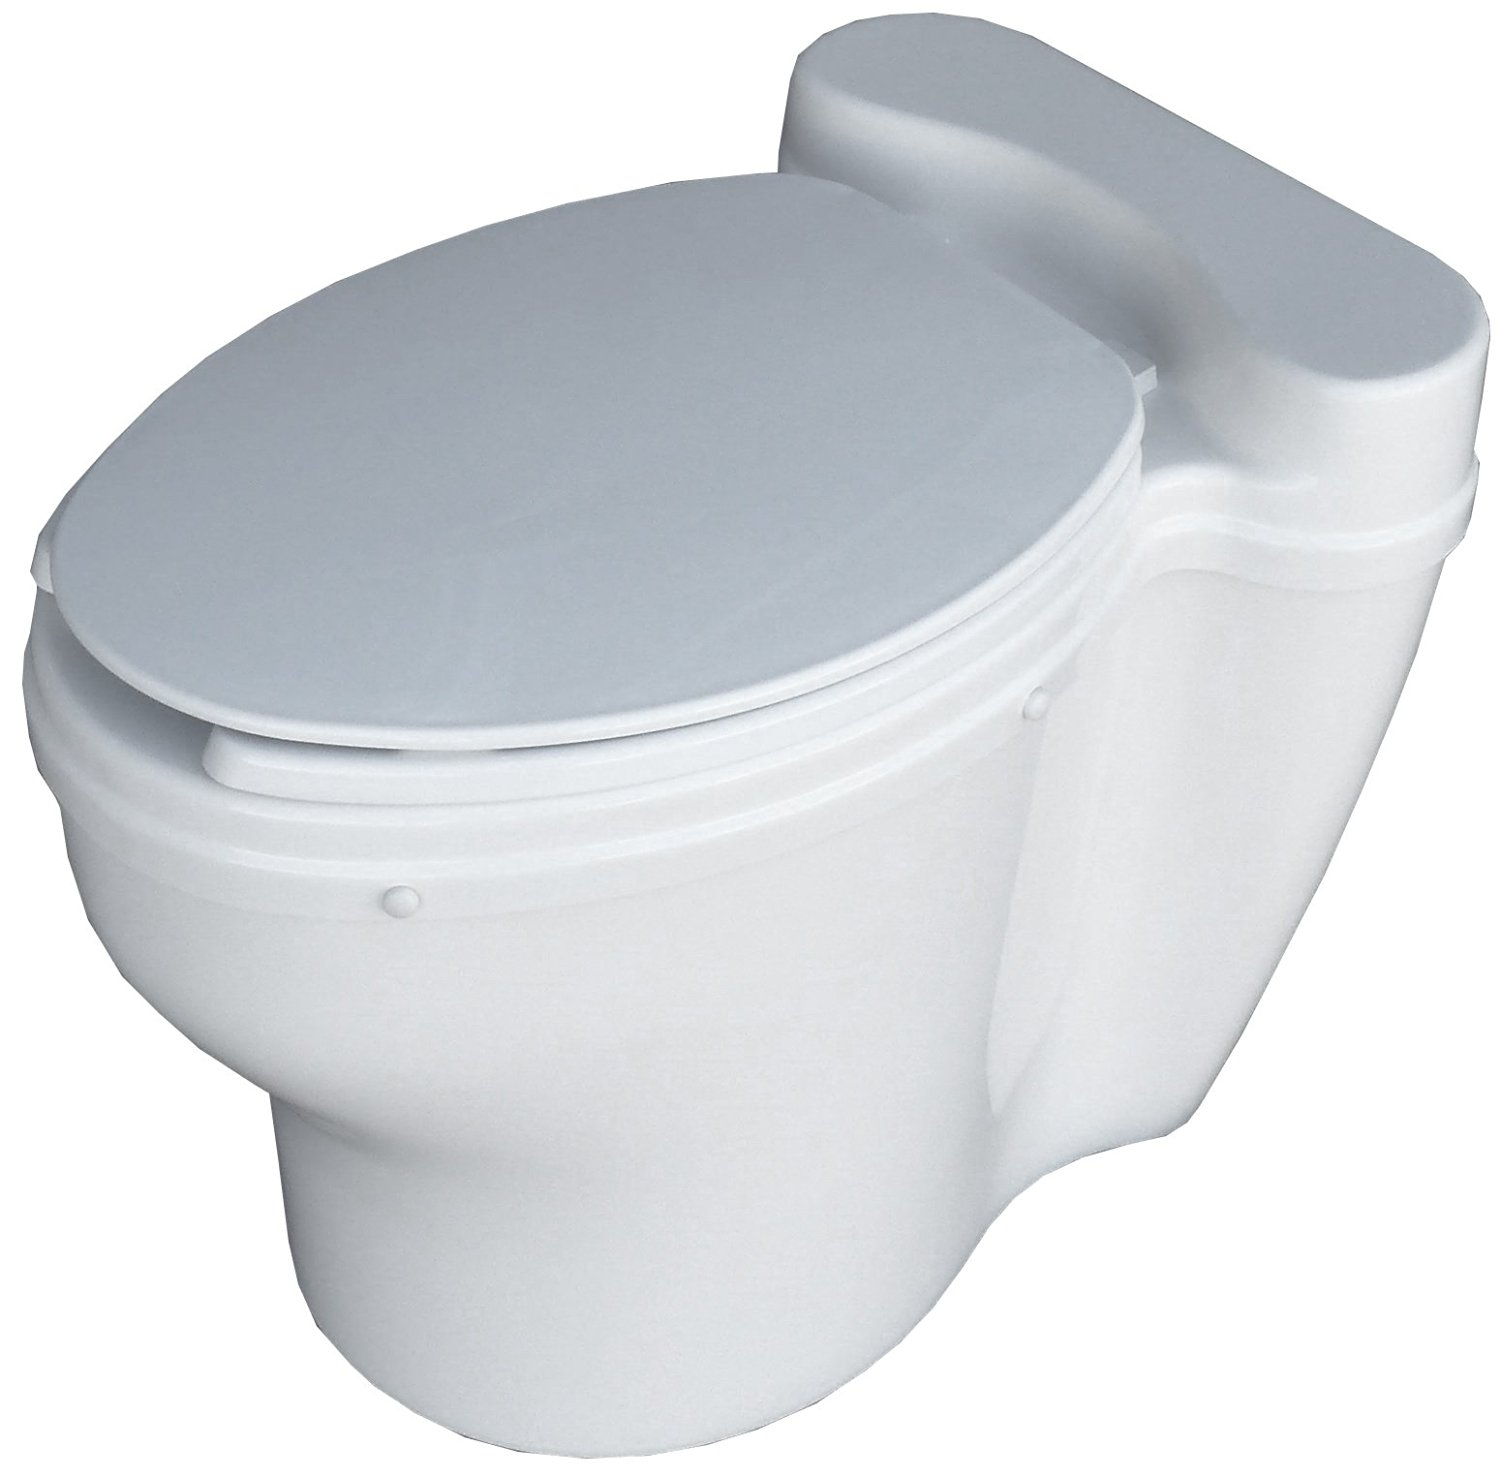 Duravit 2160510000 Durastyle One Piece Toilet Bowl With White Siphon Jet Elongated